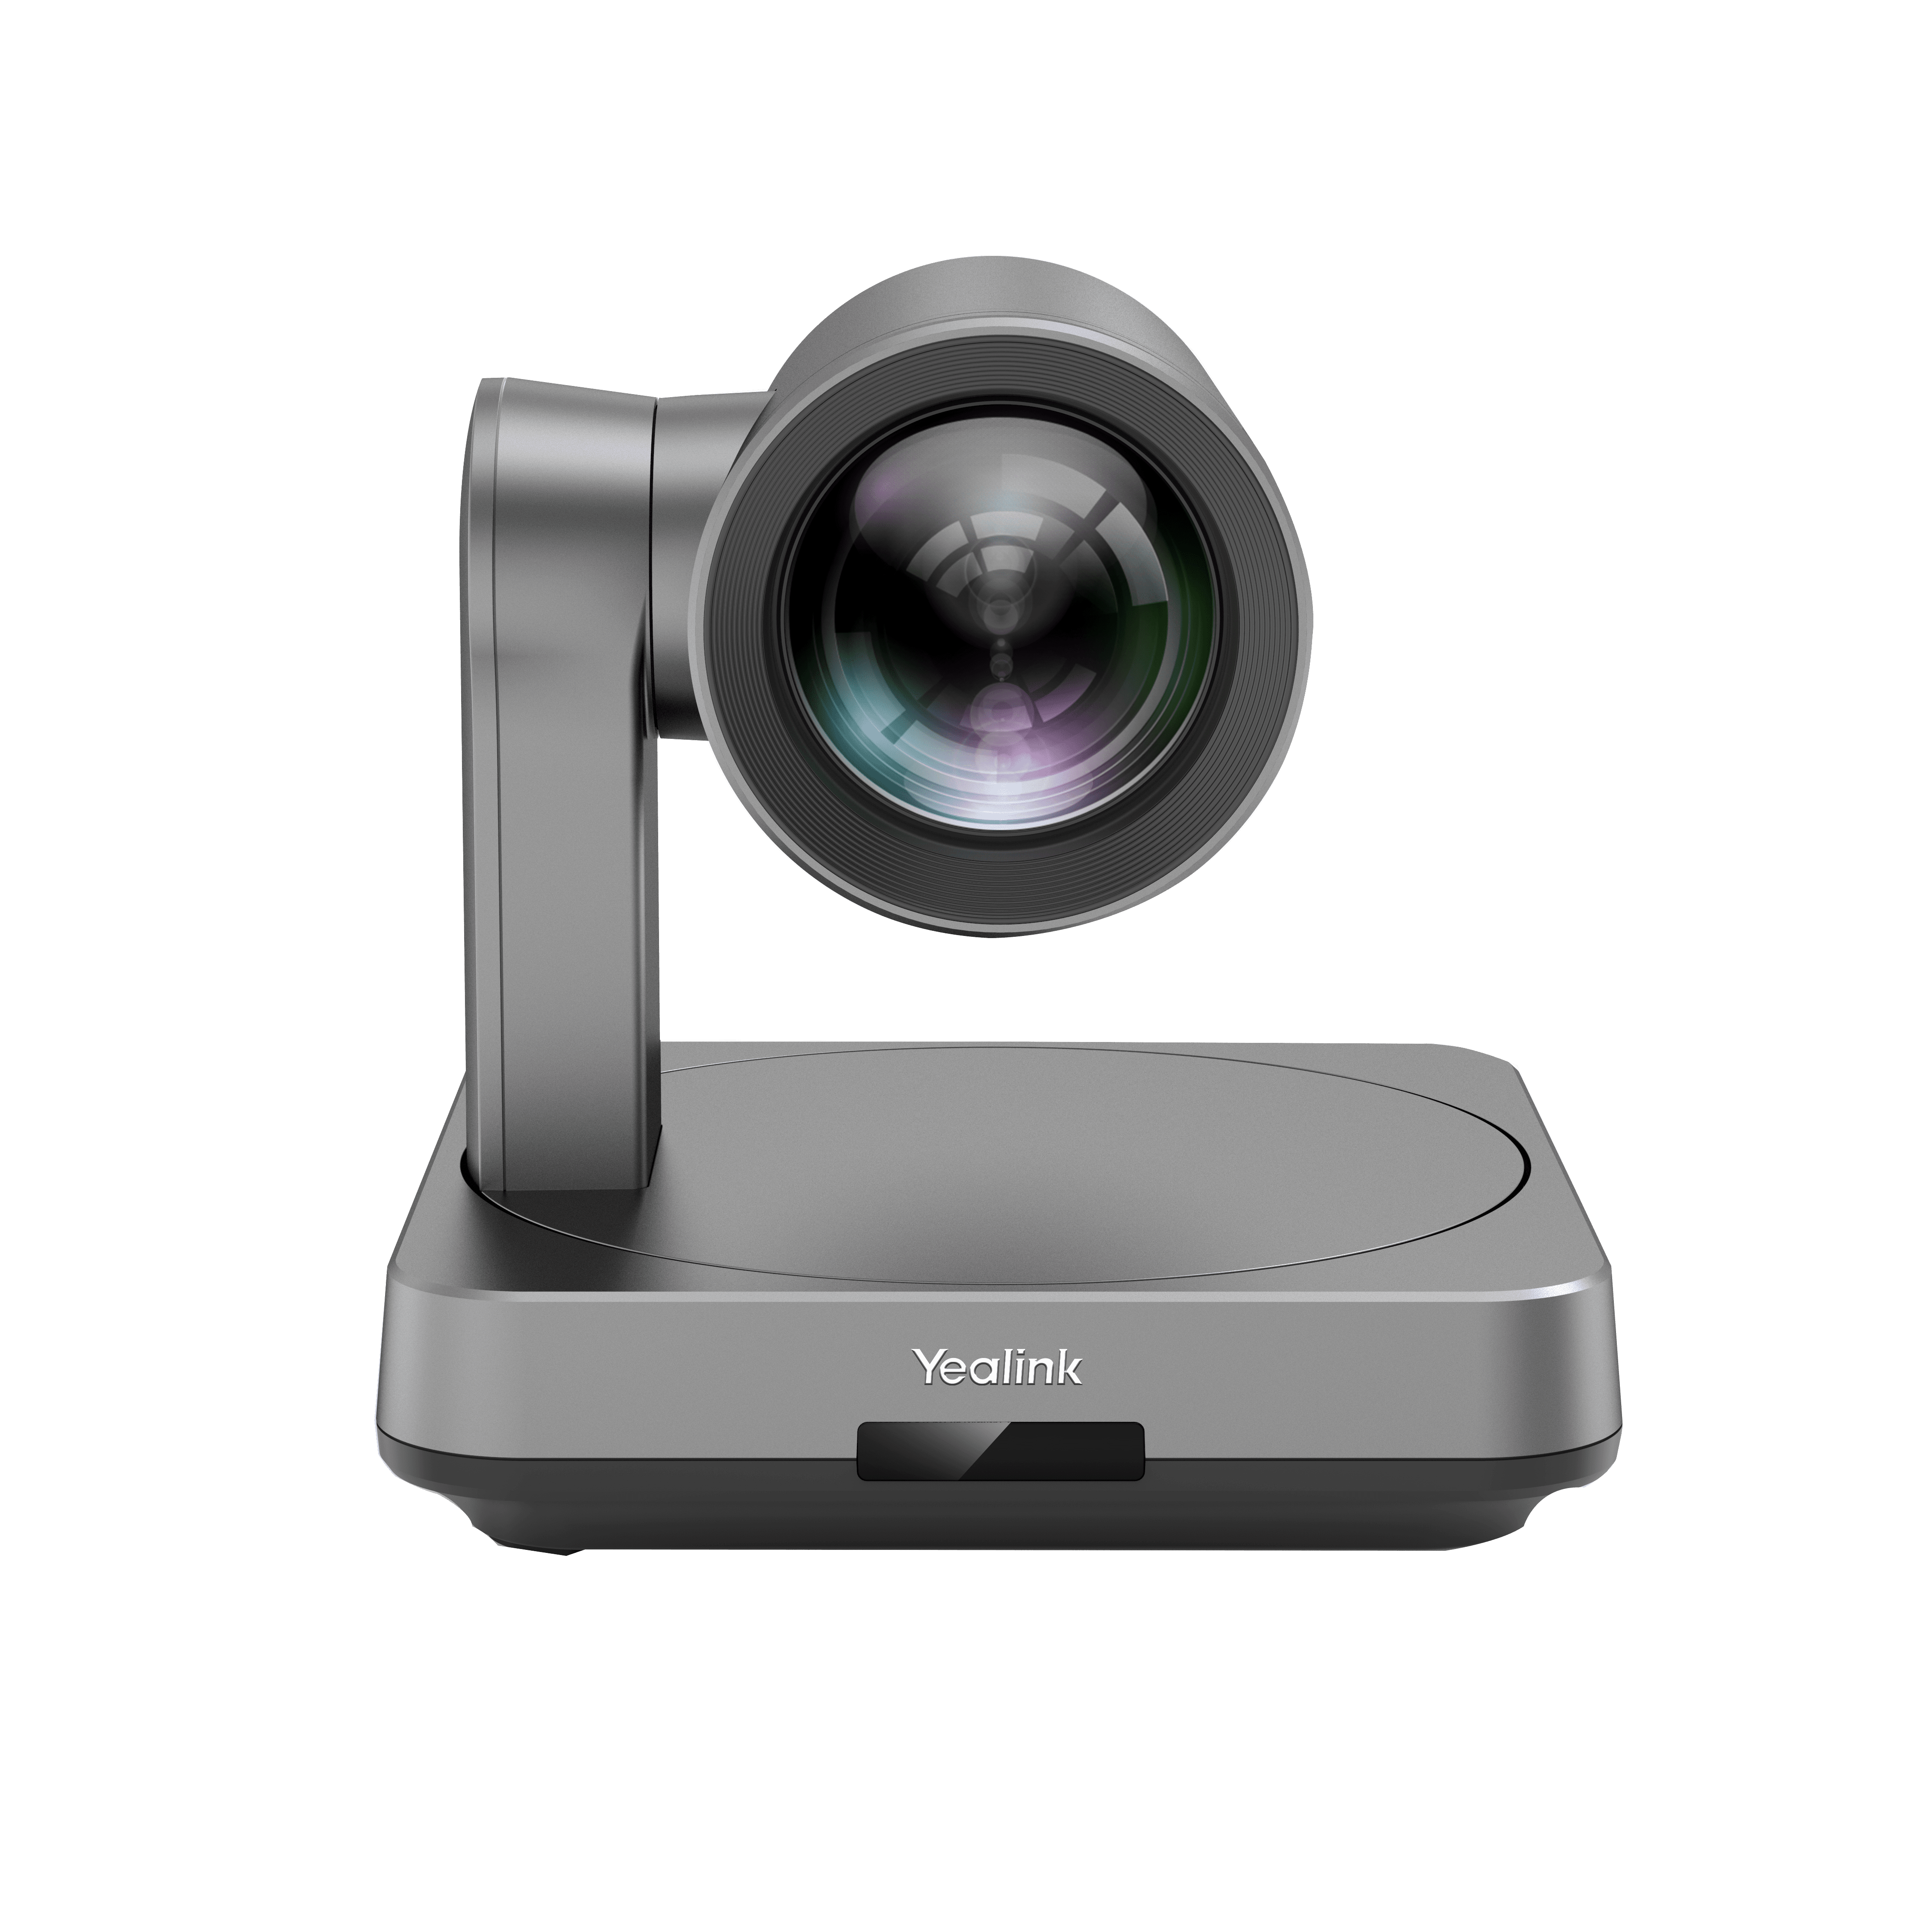 Camera Yealink UVC84, 12x optical, 4K UHD, USB , PTZ